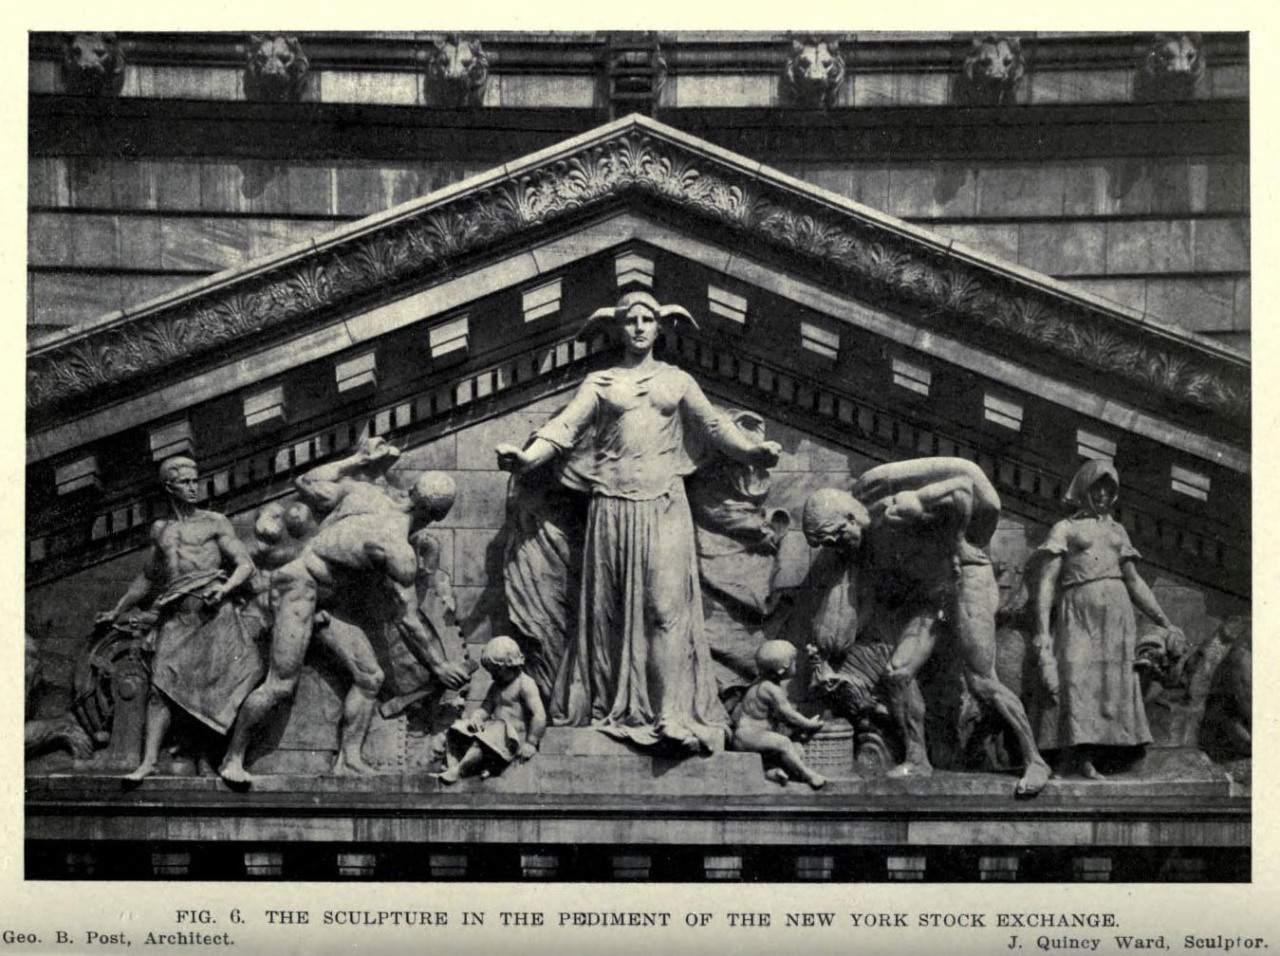 Quincy Ward's sculptures for the pediment of the New York Stock Exchange Building, New York City